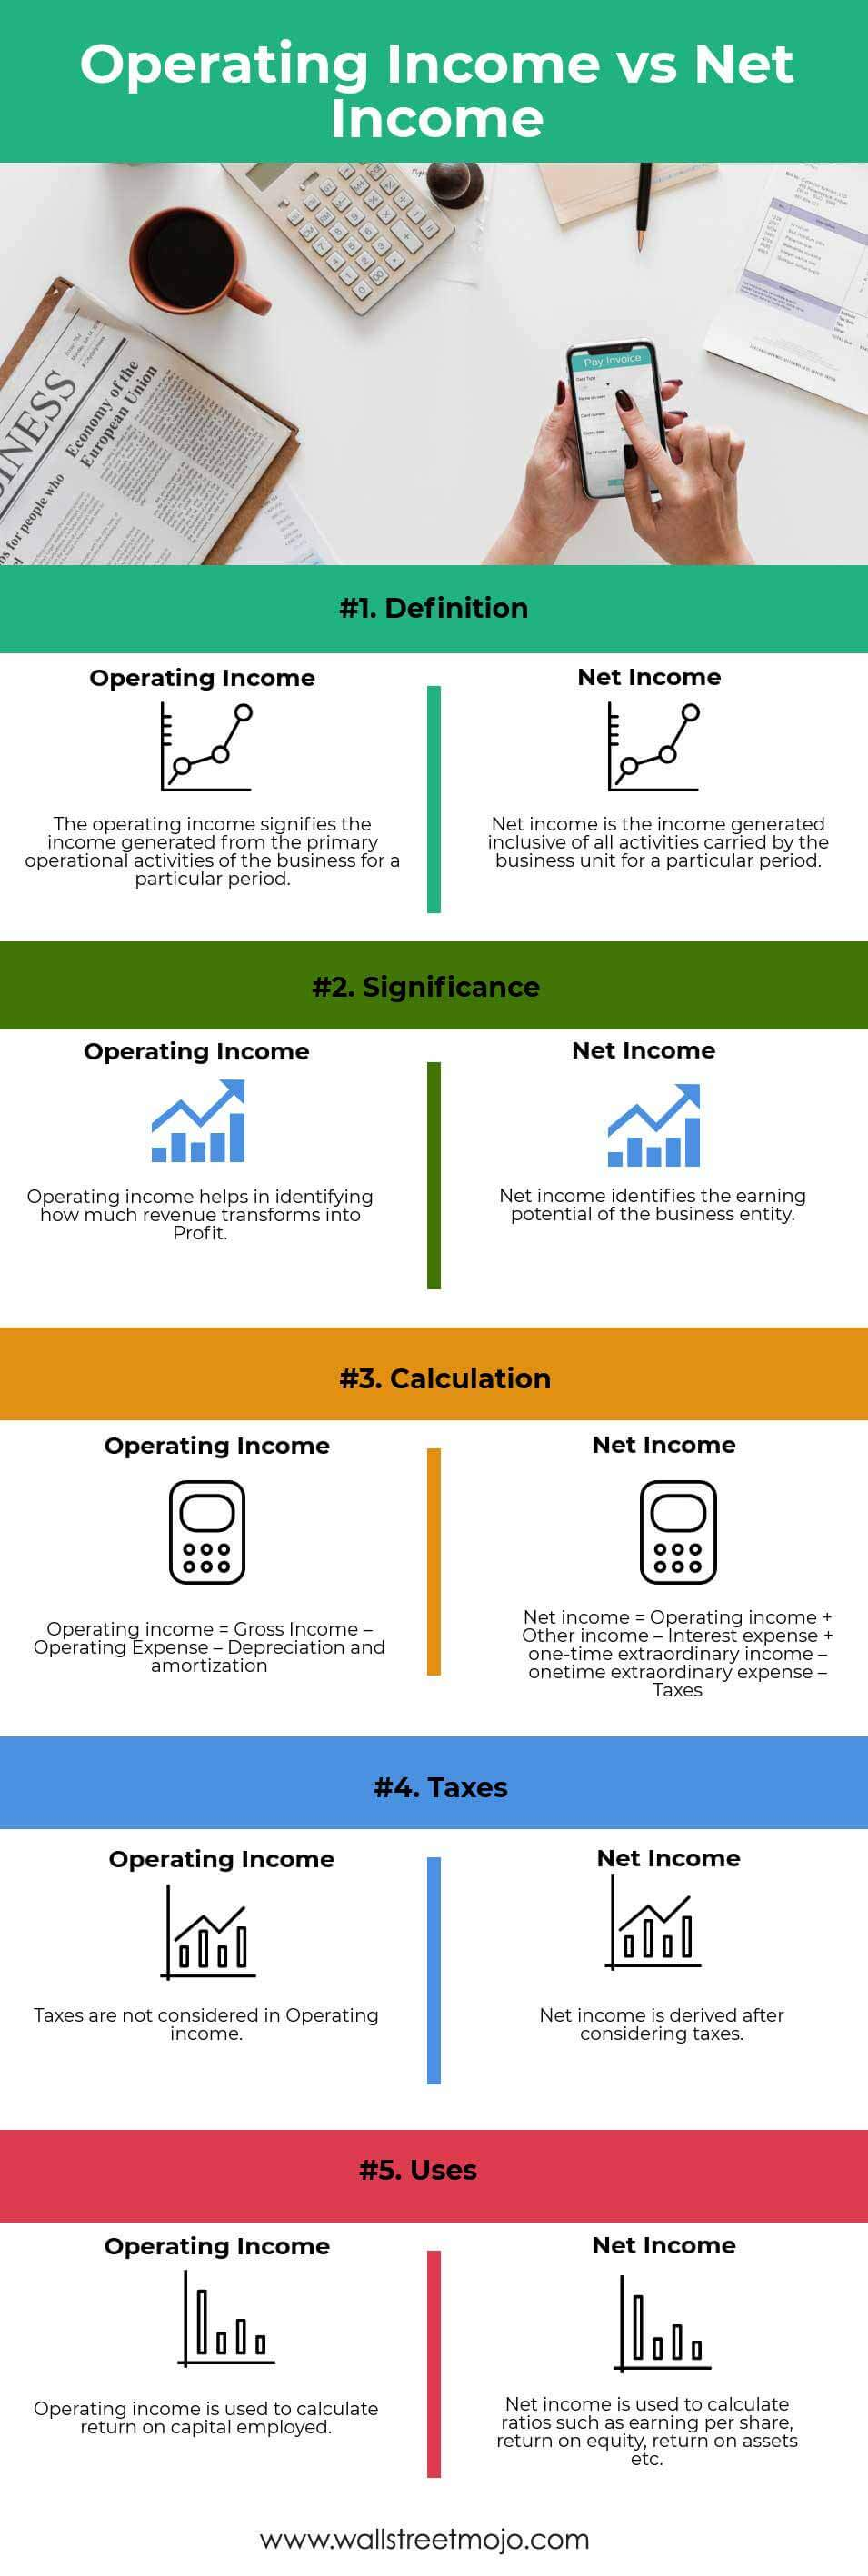 Operating-Income-vs-Net-Income-info